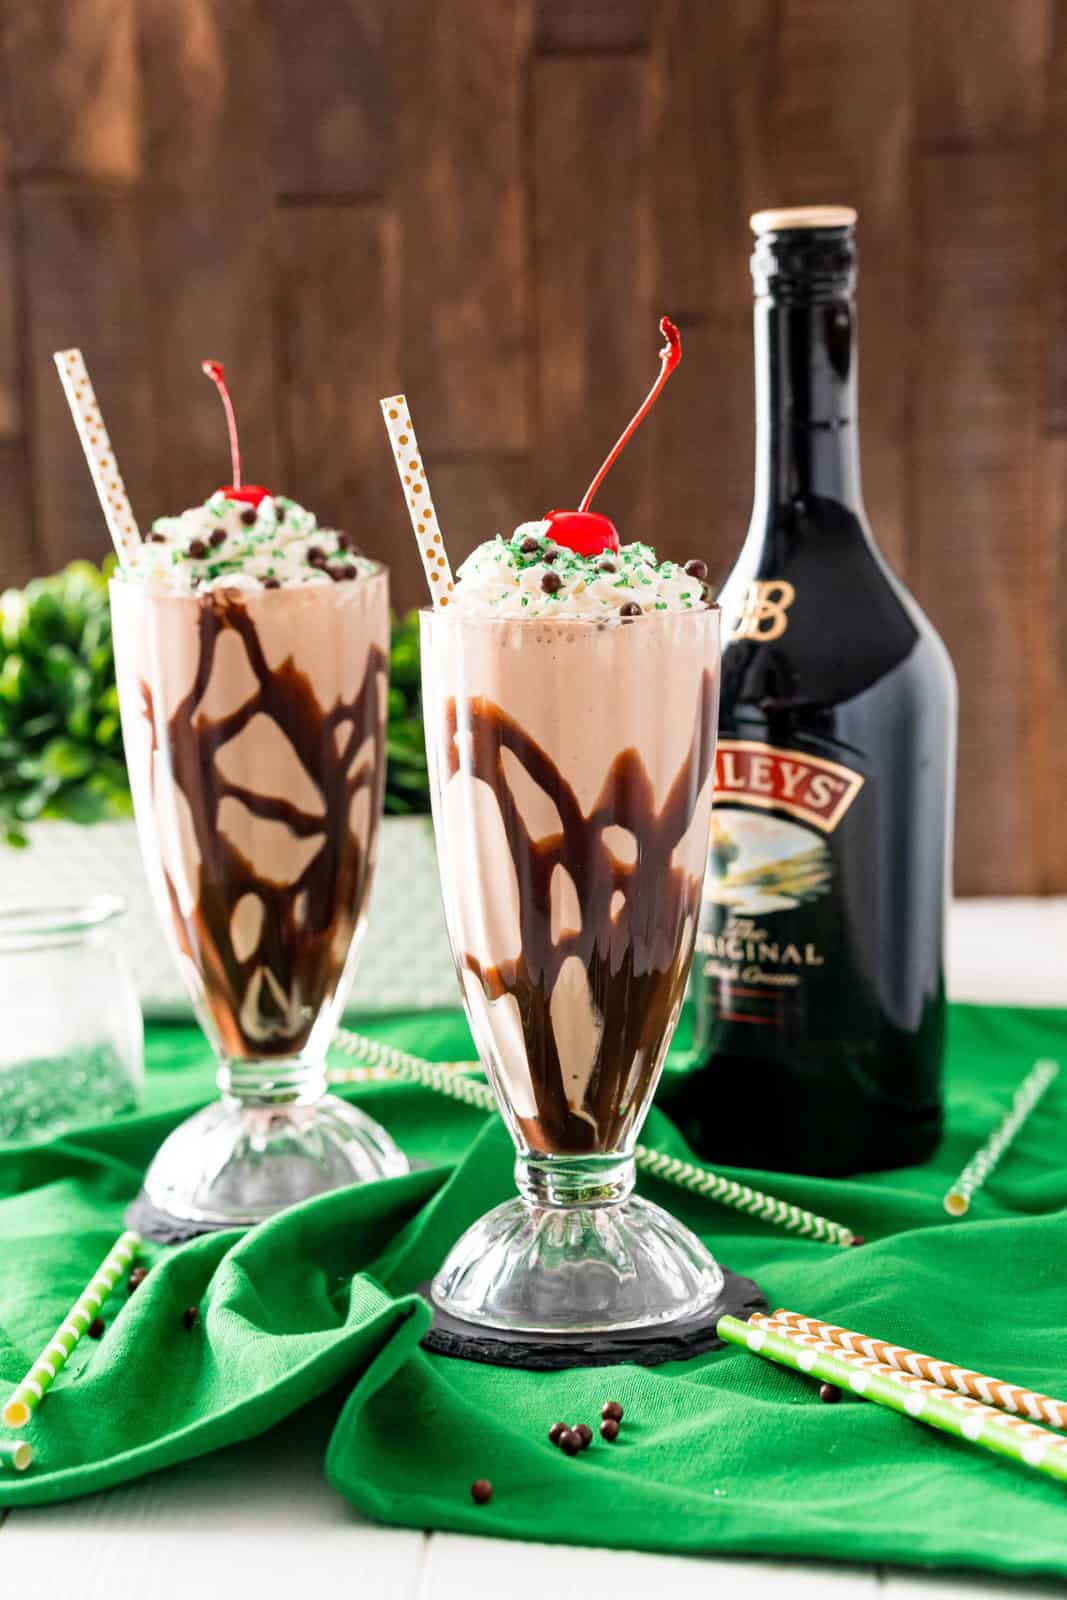 Two glasses of Chocolate Milkshake with Baileys bottle in background